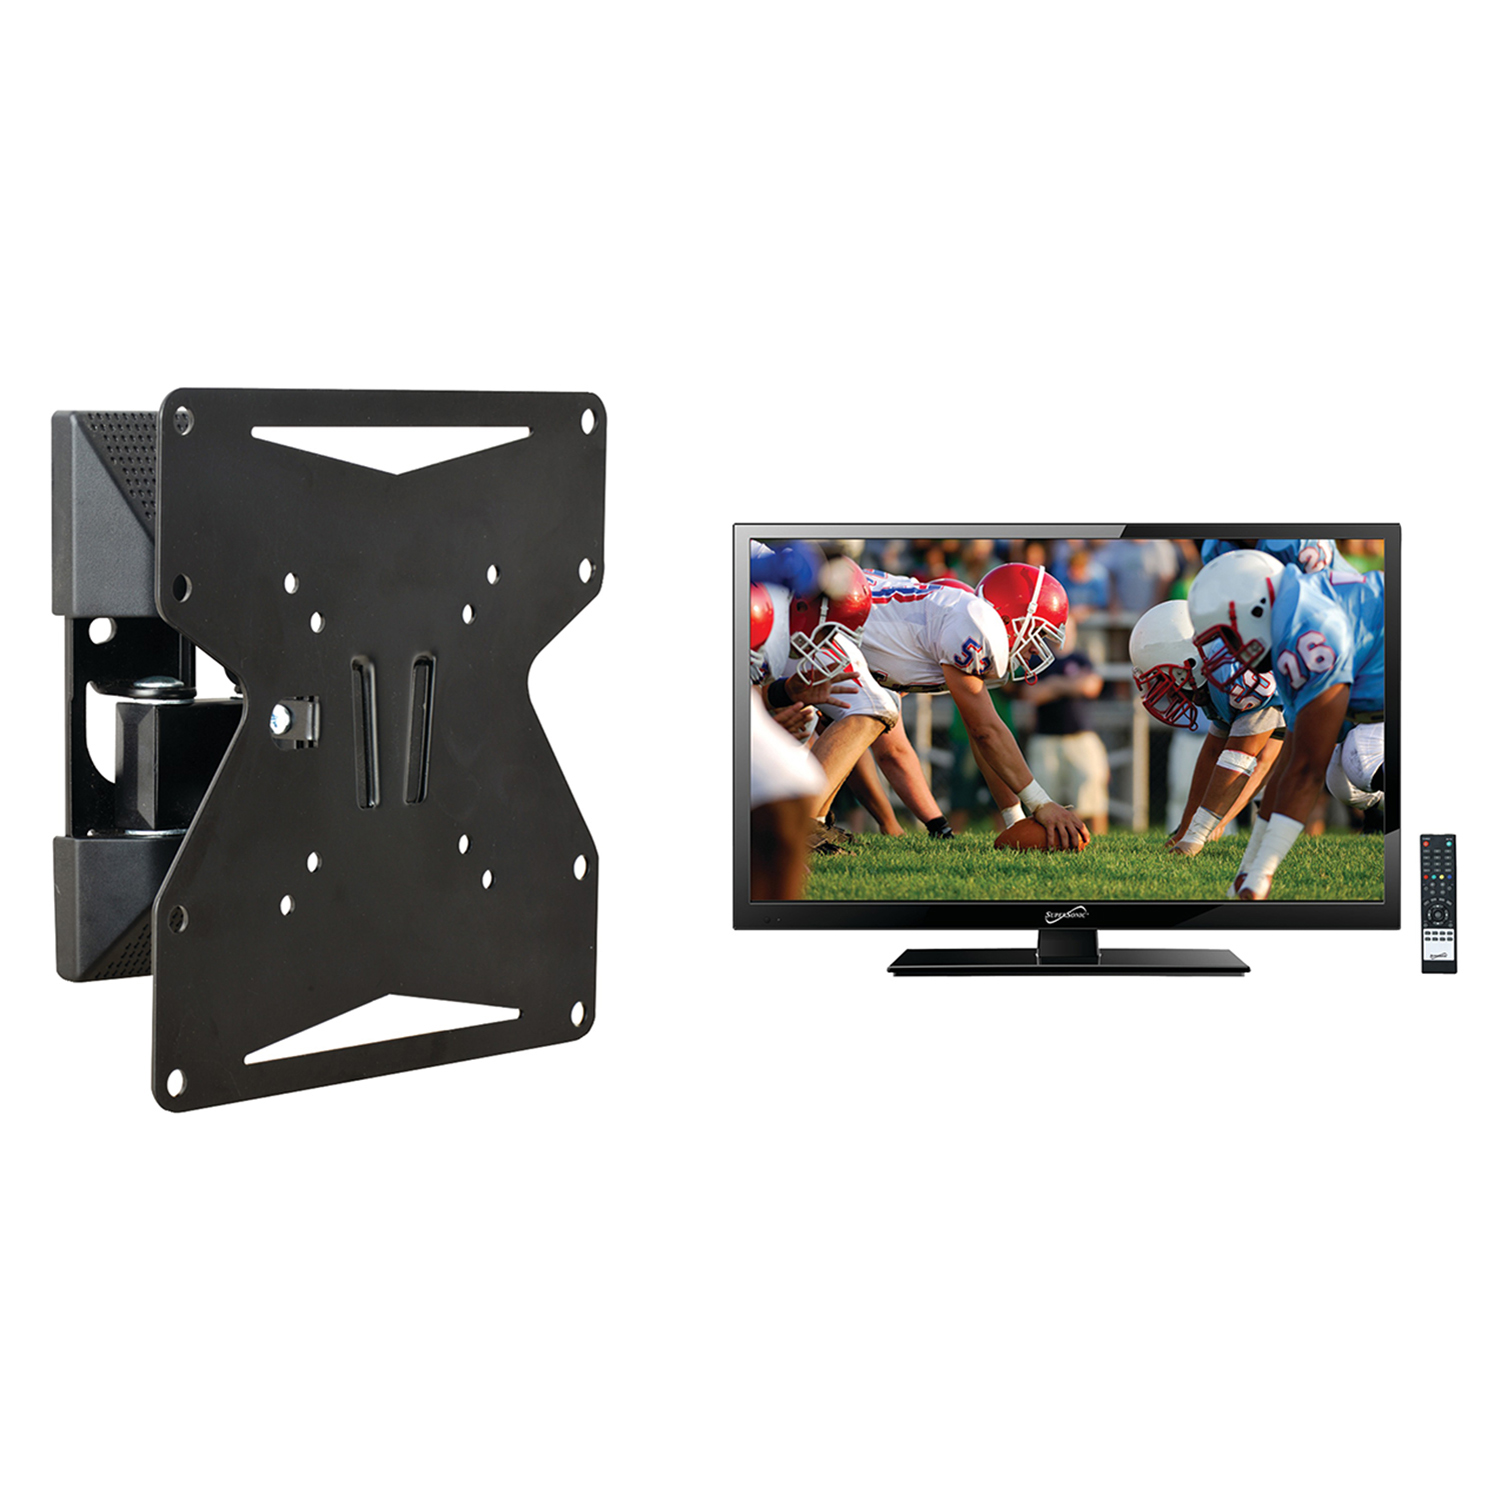 "Supersonic 19"" Class HD (720P) LED TV (SC-1911) and Stanley TMX-022FM Basics Full-Motion Mount"